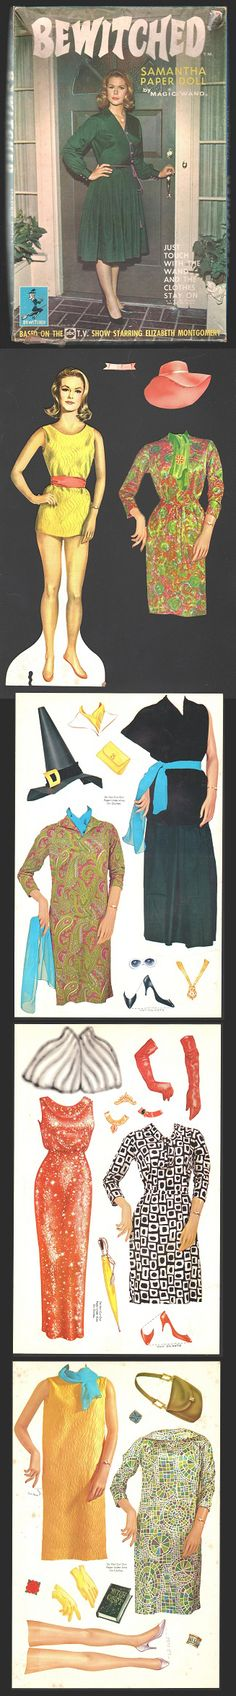 Bewitched paper dolls #recortable #scissorwork #papertoy- Carefully selected by GORGONIA www.gorgonia.it